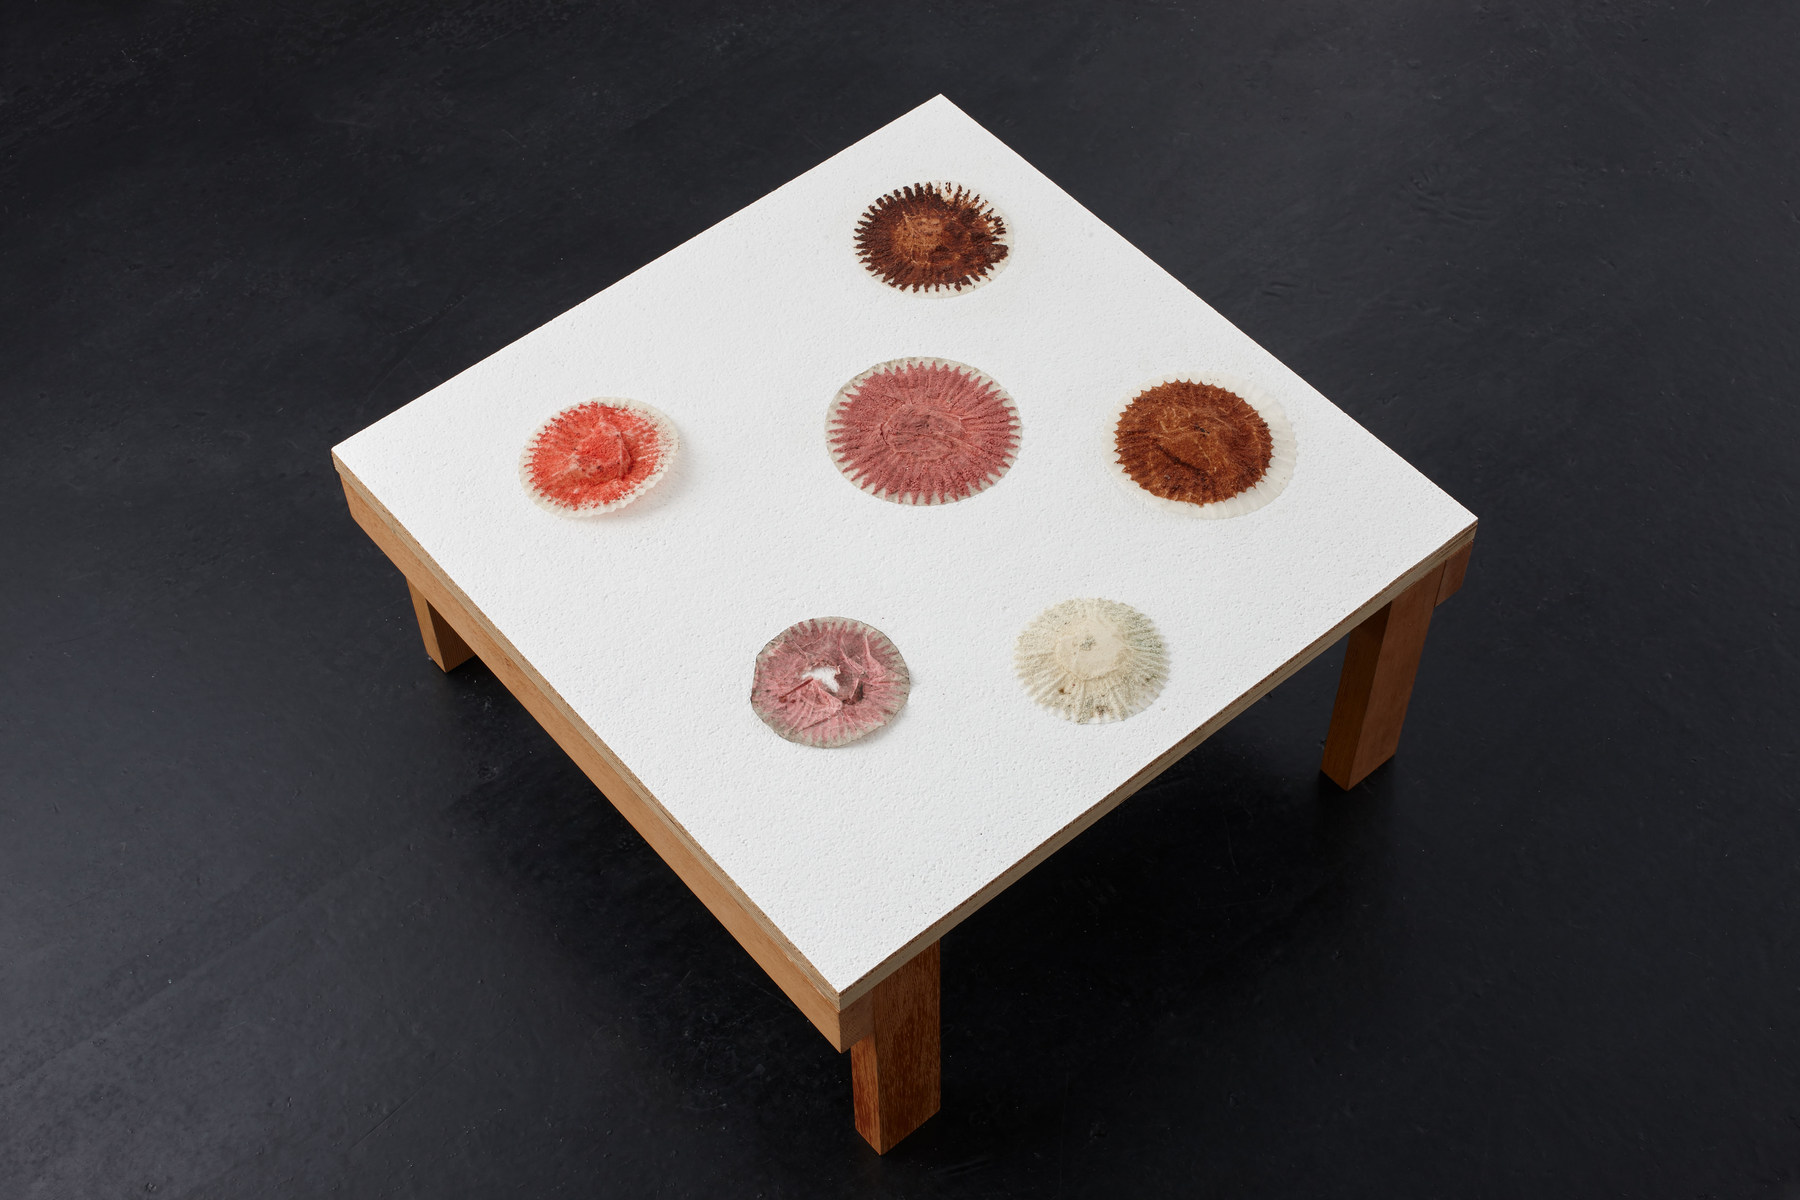 Yuji Agematsu - Table Work, 2011-2014